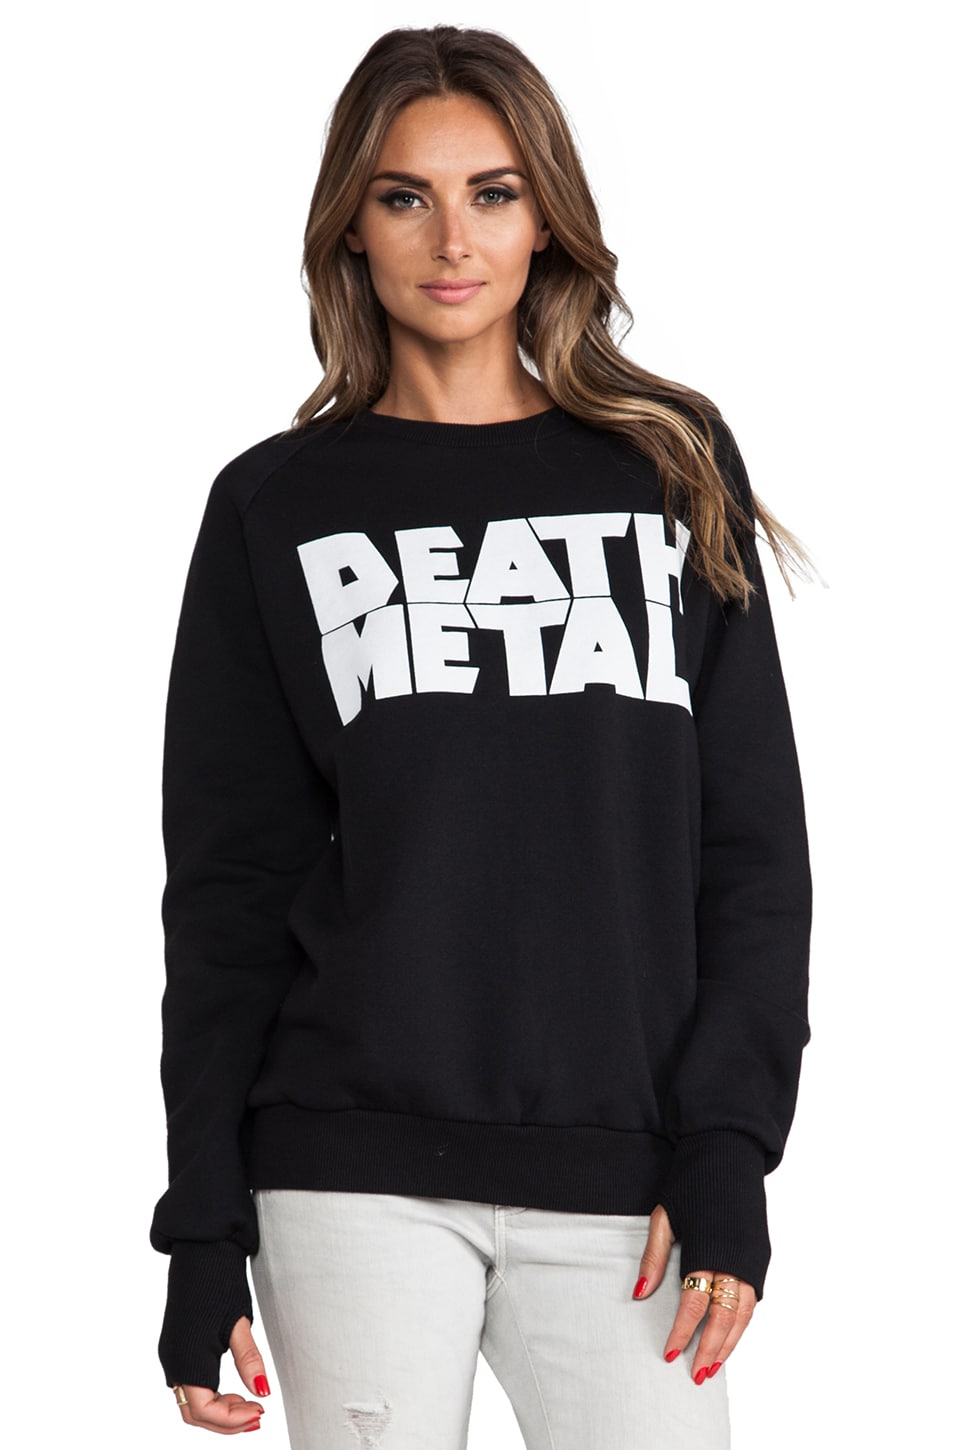 AJL Madhouse Death Metal Sweatshirt in Black